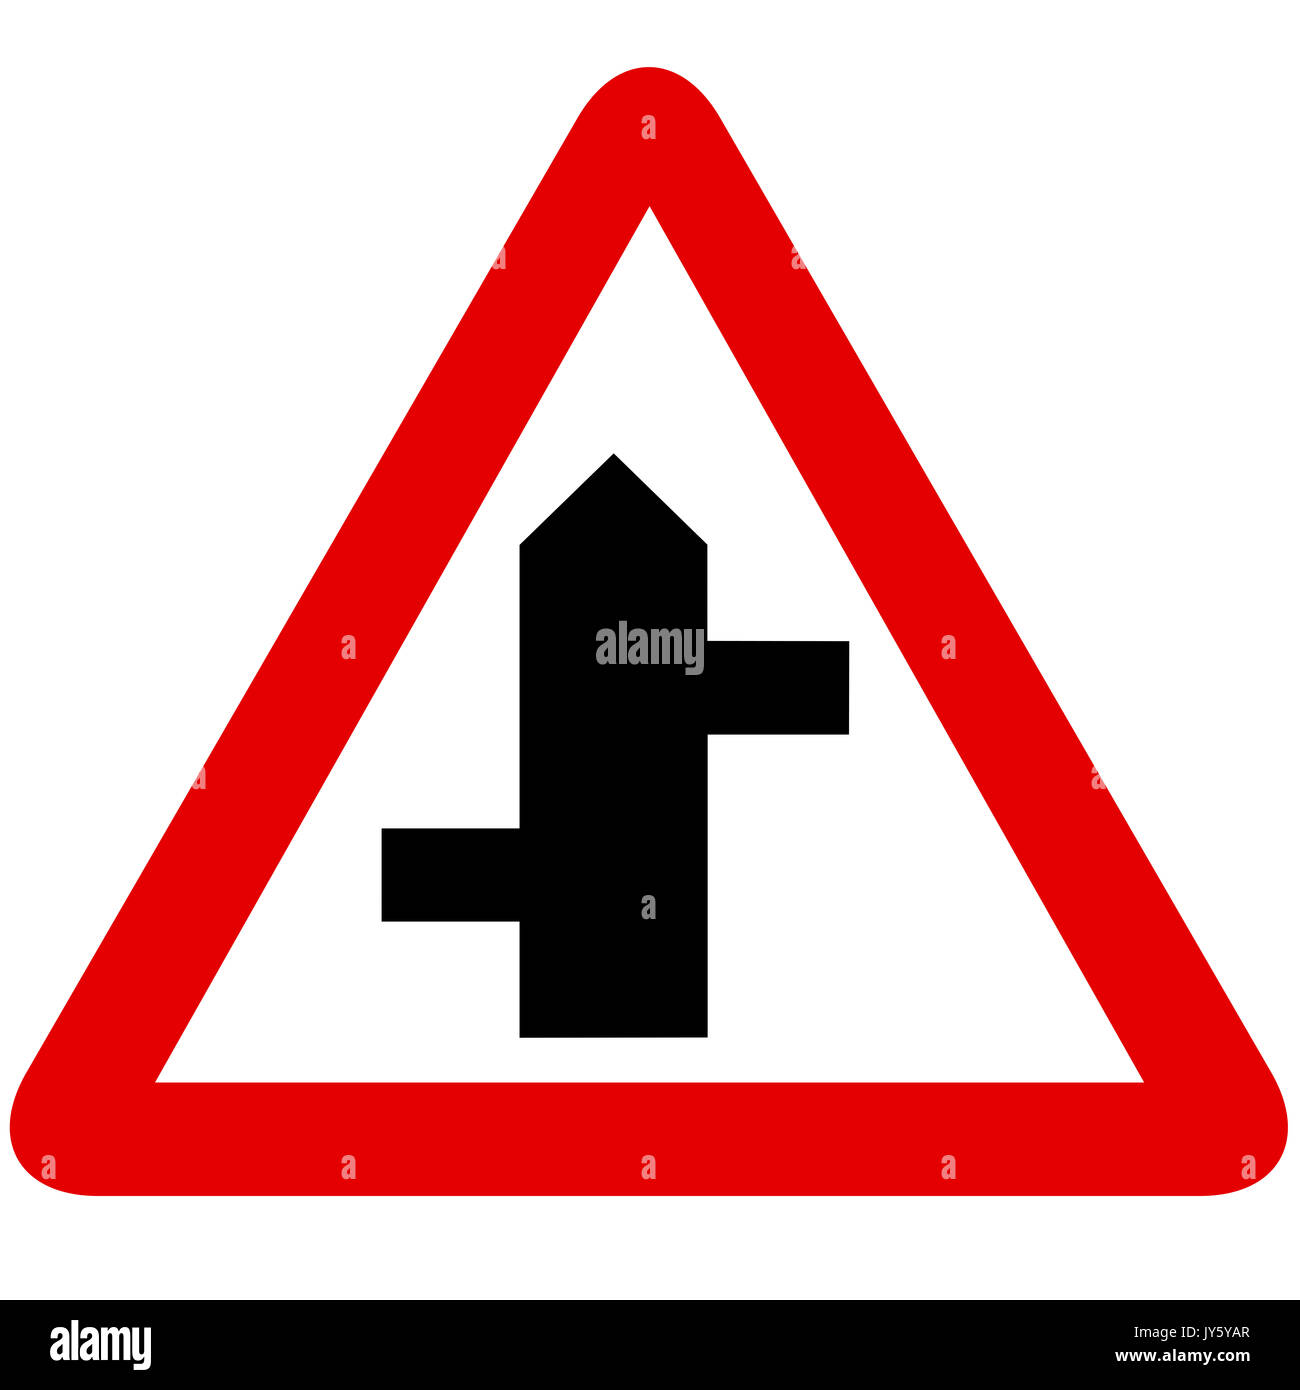 Staggered junction road sign on white background - Stock Image